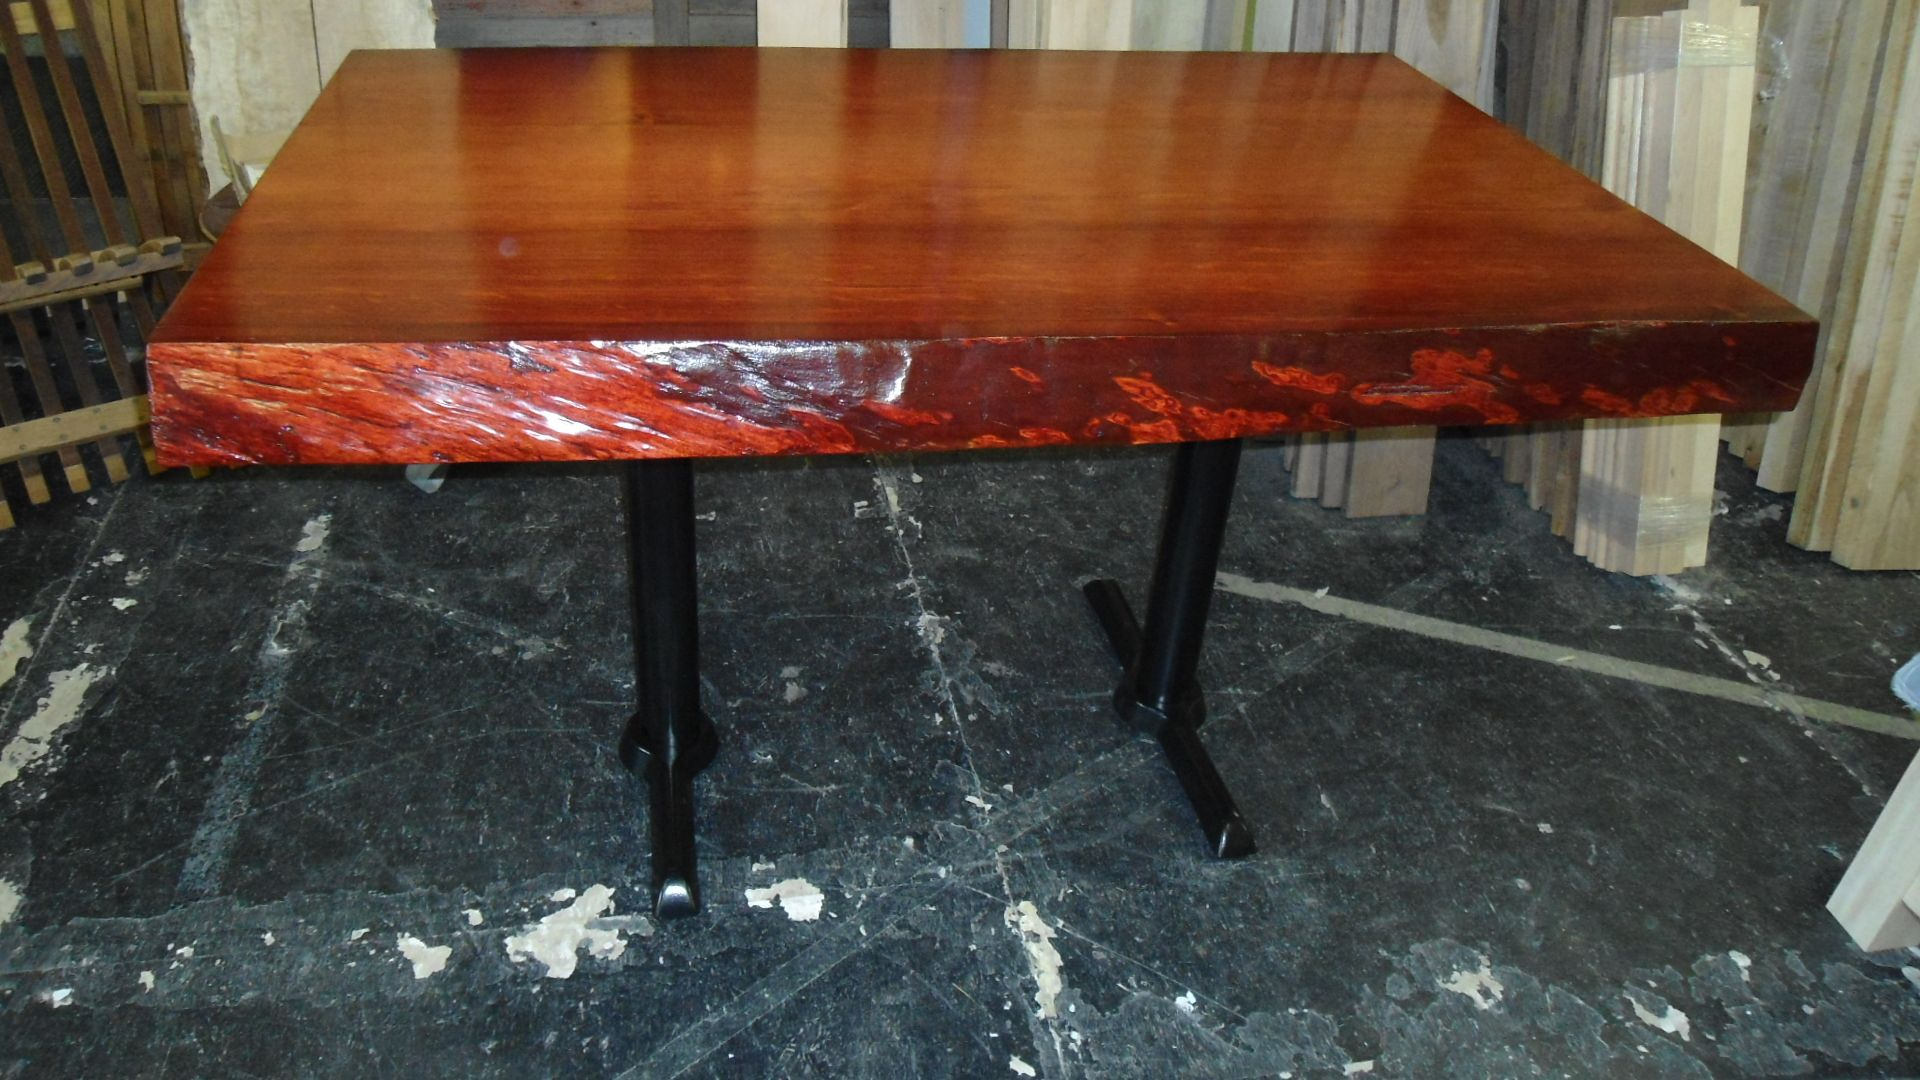 Good Old Growth Doug Fir Live Edge Slab Table By Refined Rustic Furniture Ltd,  Calgary,